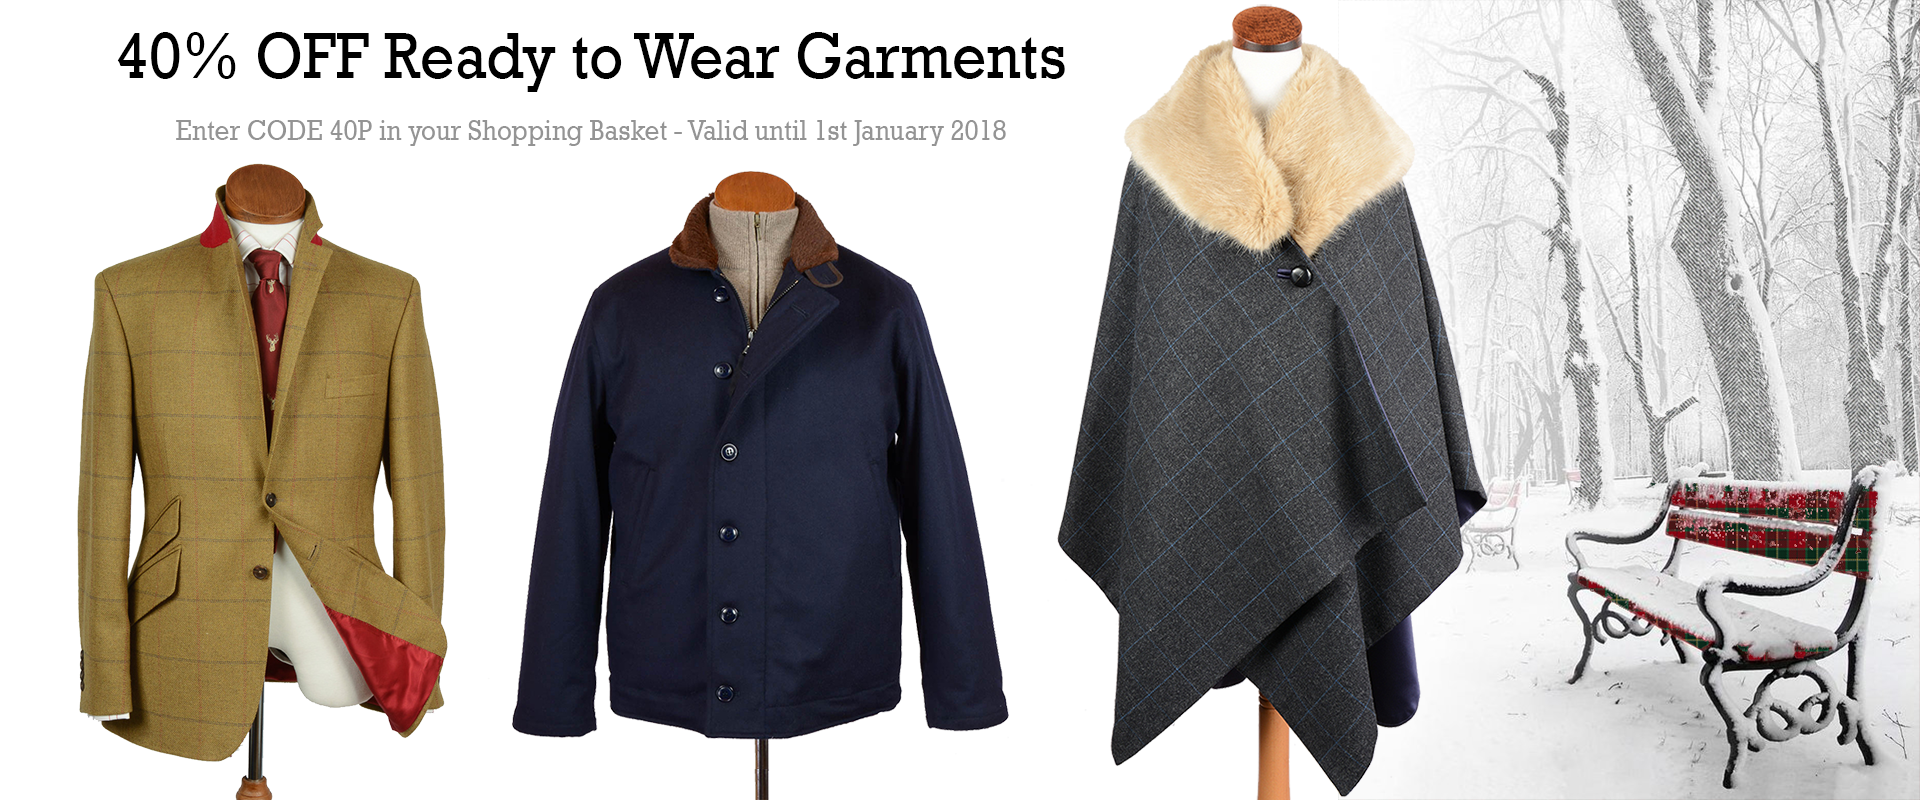 40% Off Tweed Jackets and Winter Wear